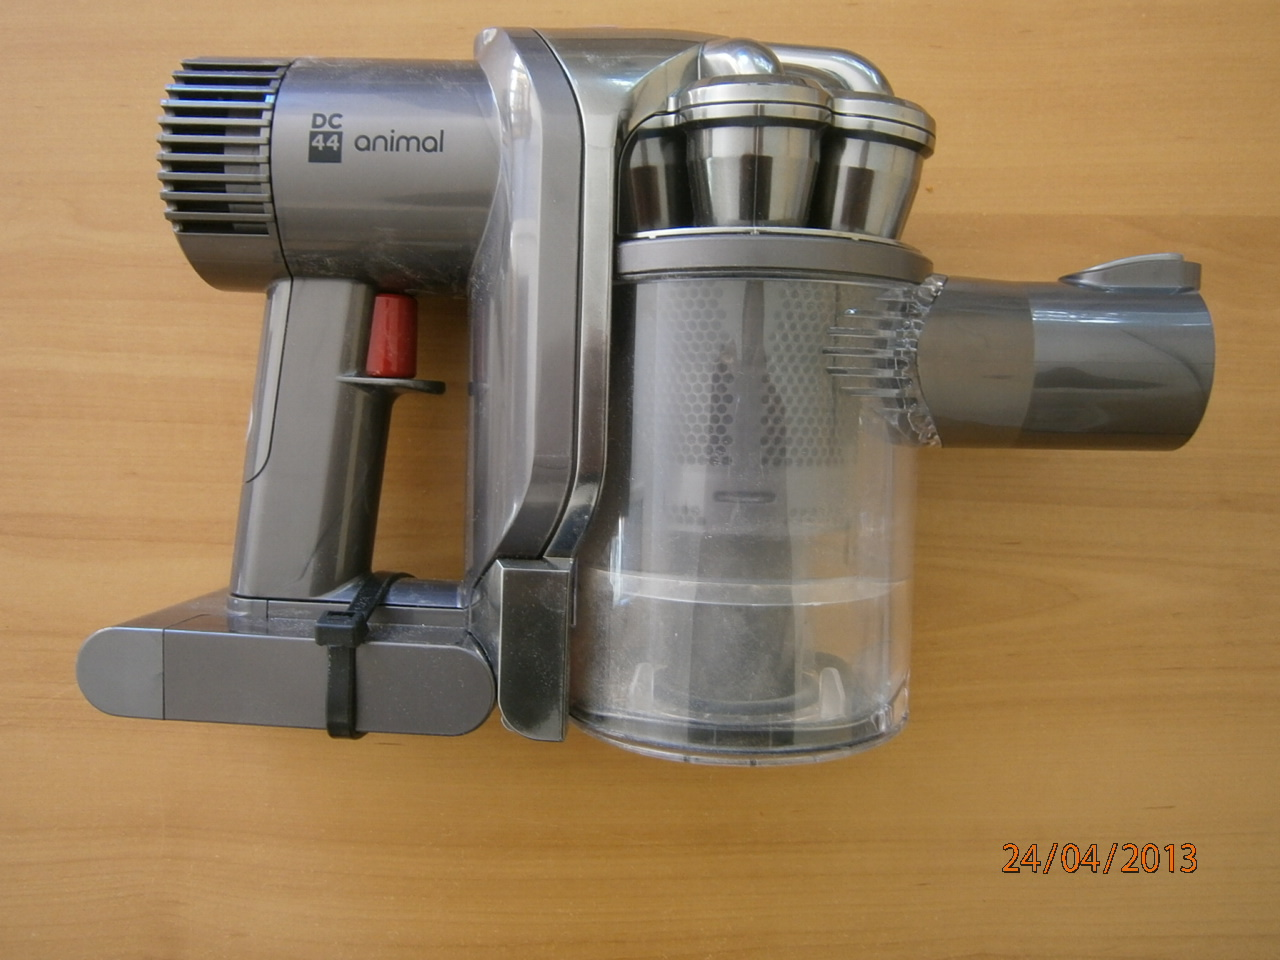 Taner's Blog: Dyson DC 44 Animal Trigger Problem Easily Fixed